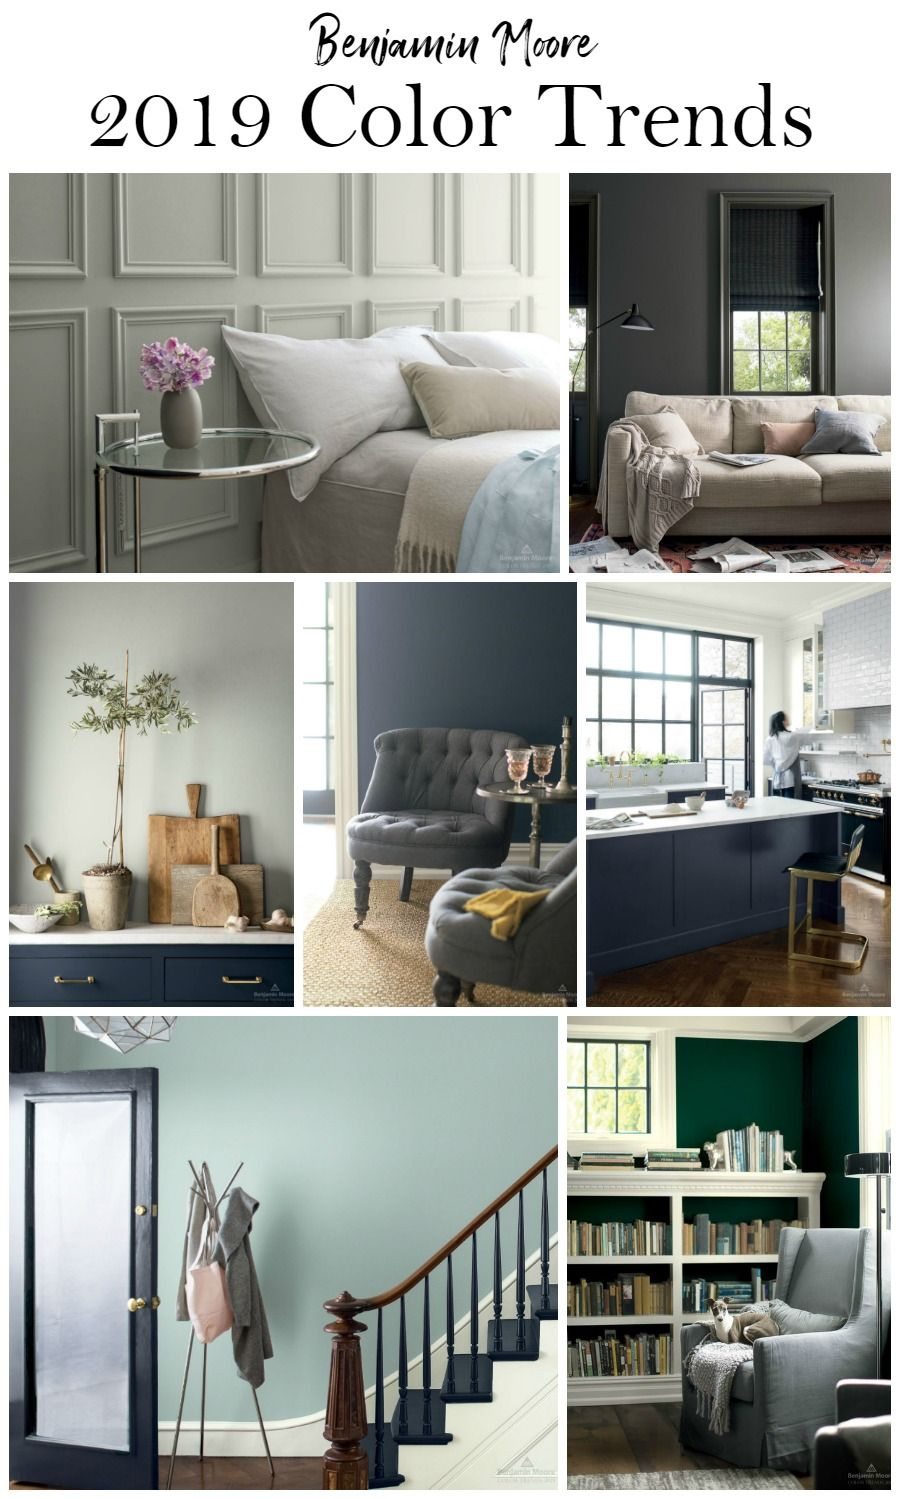 Benjamin moore paint color trends 2019 paint colors - Benjamin moore interior paint colors ...